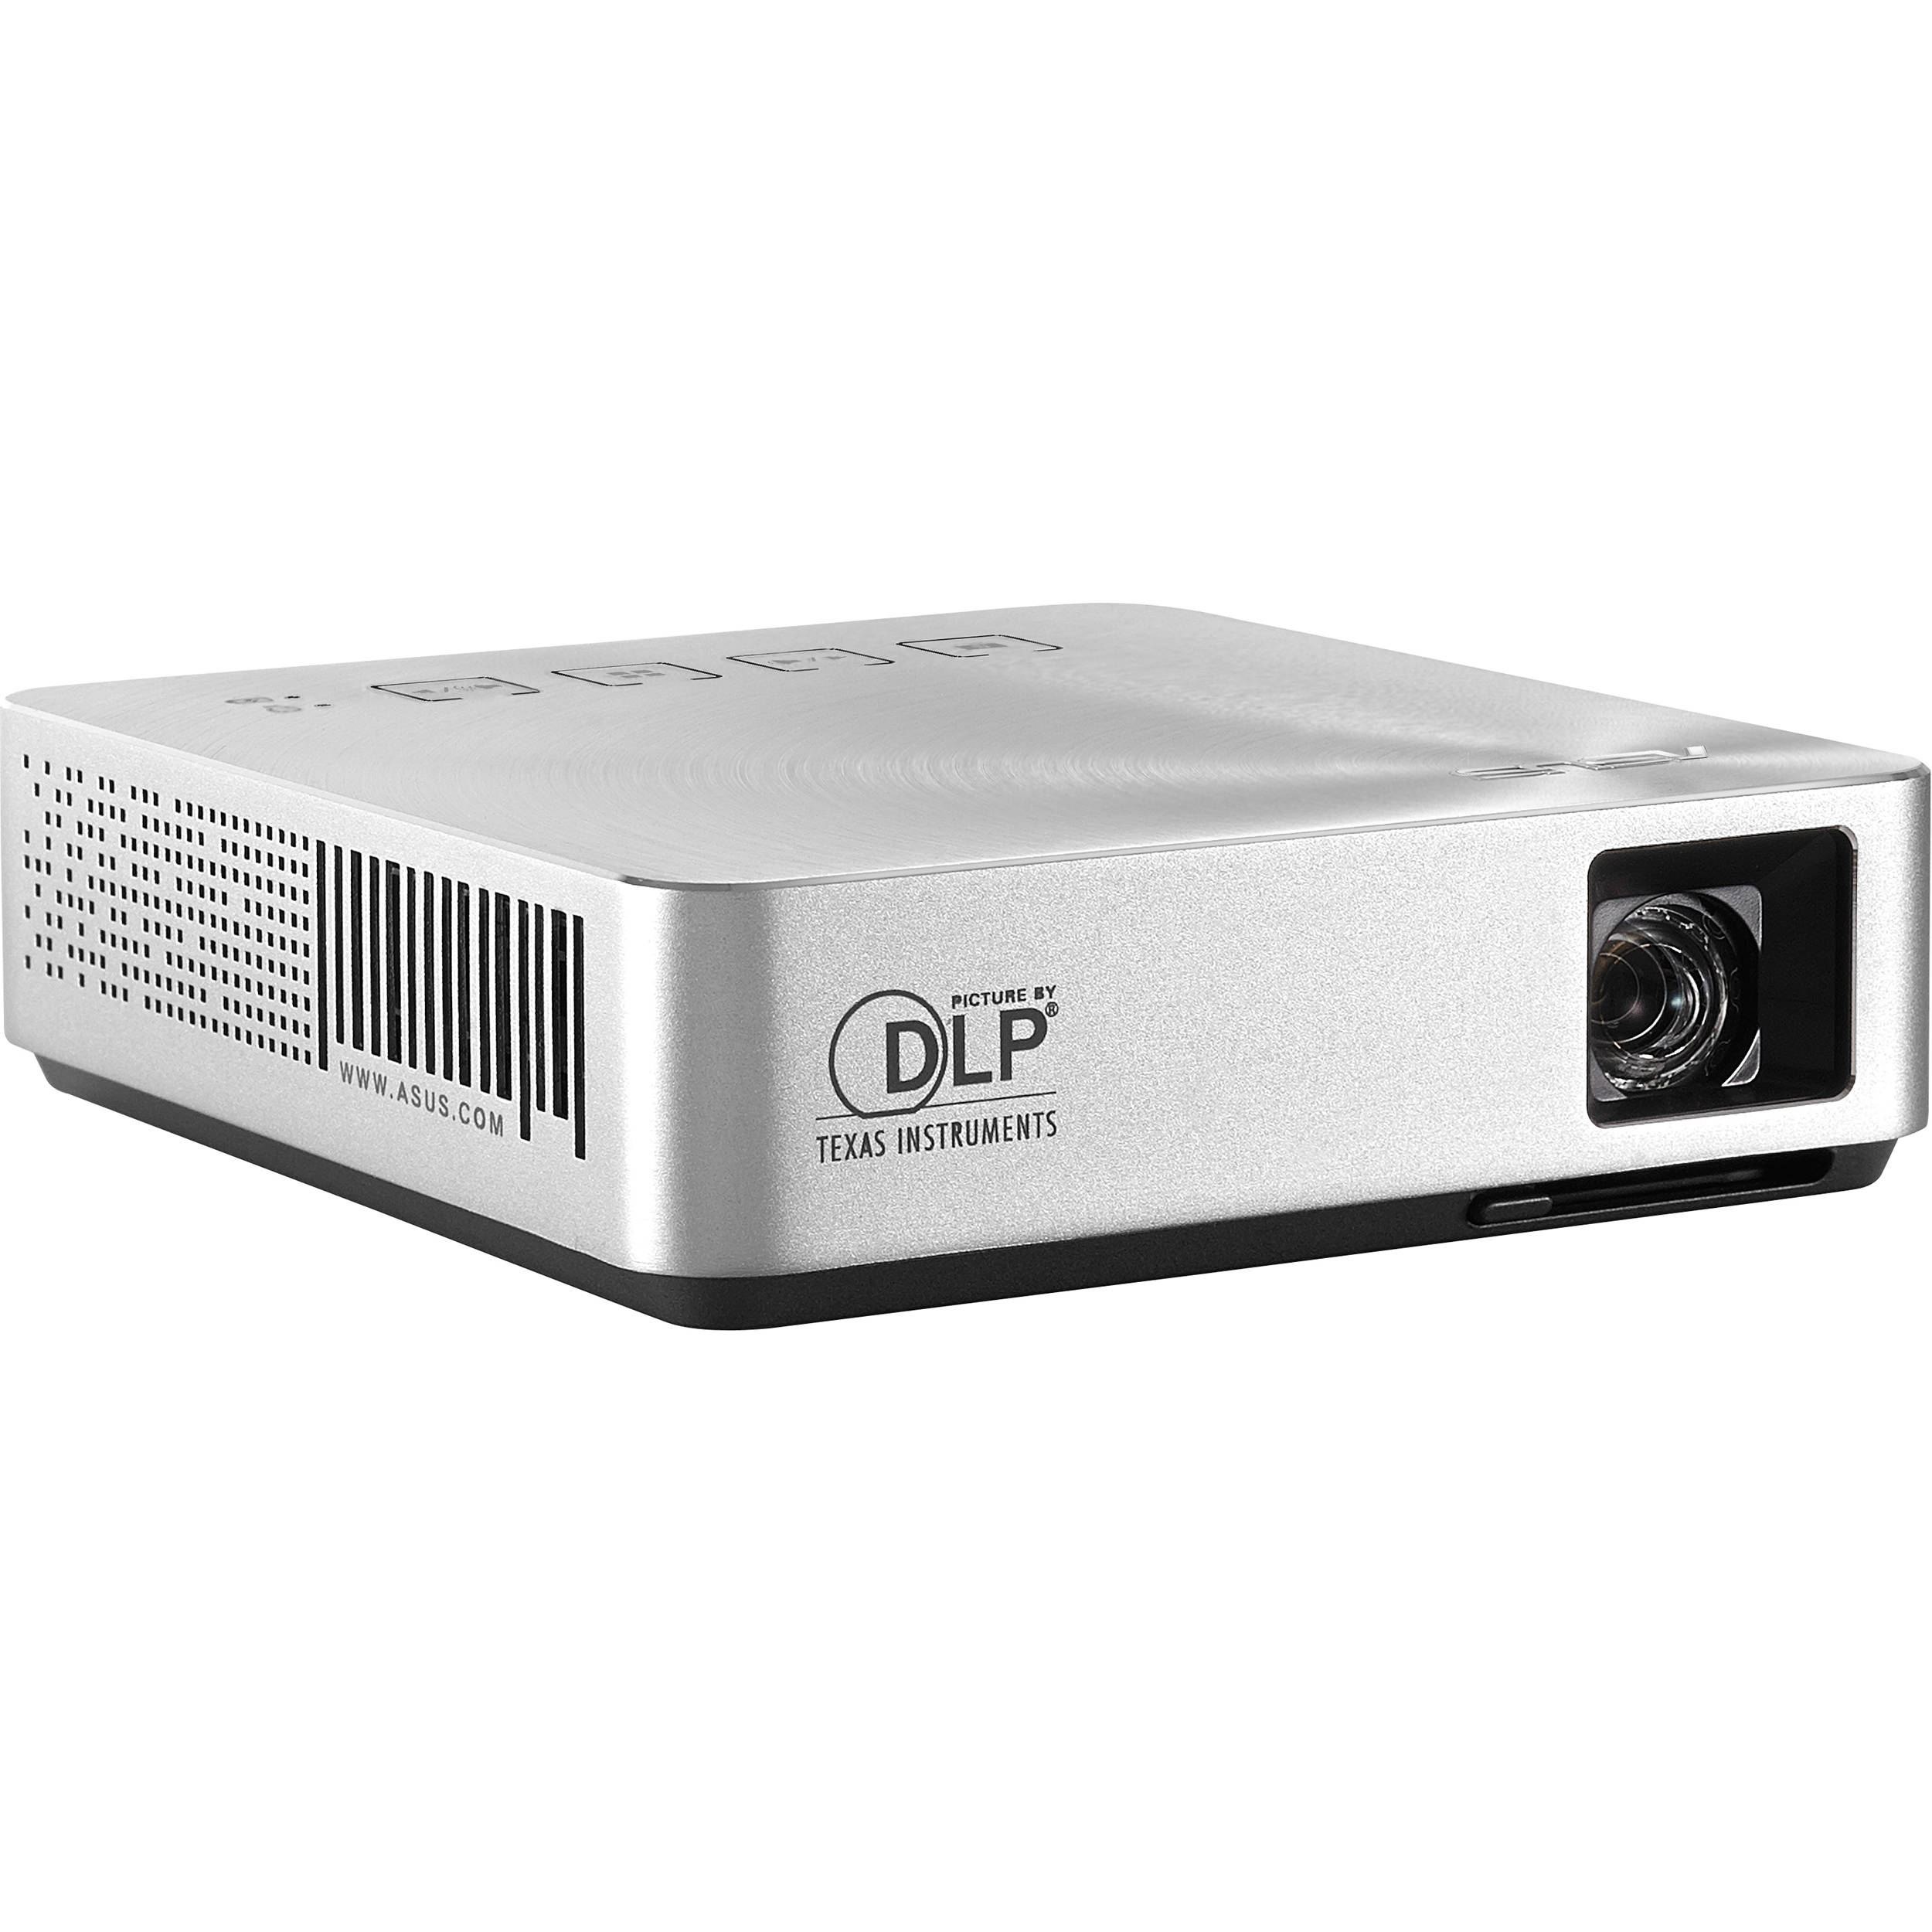 Asus s1 led pocket projector 90lj0060 b00140 b h photo video for Pocket projector dlp